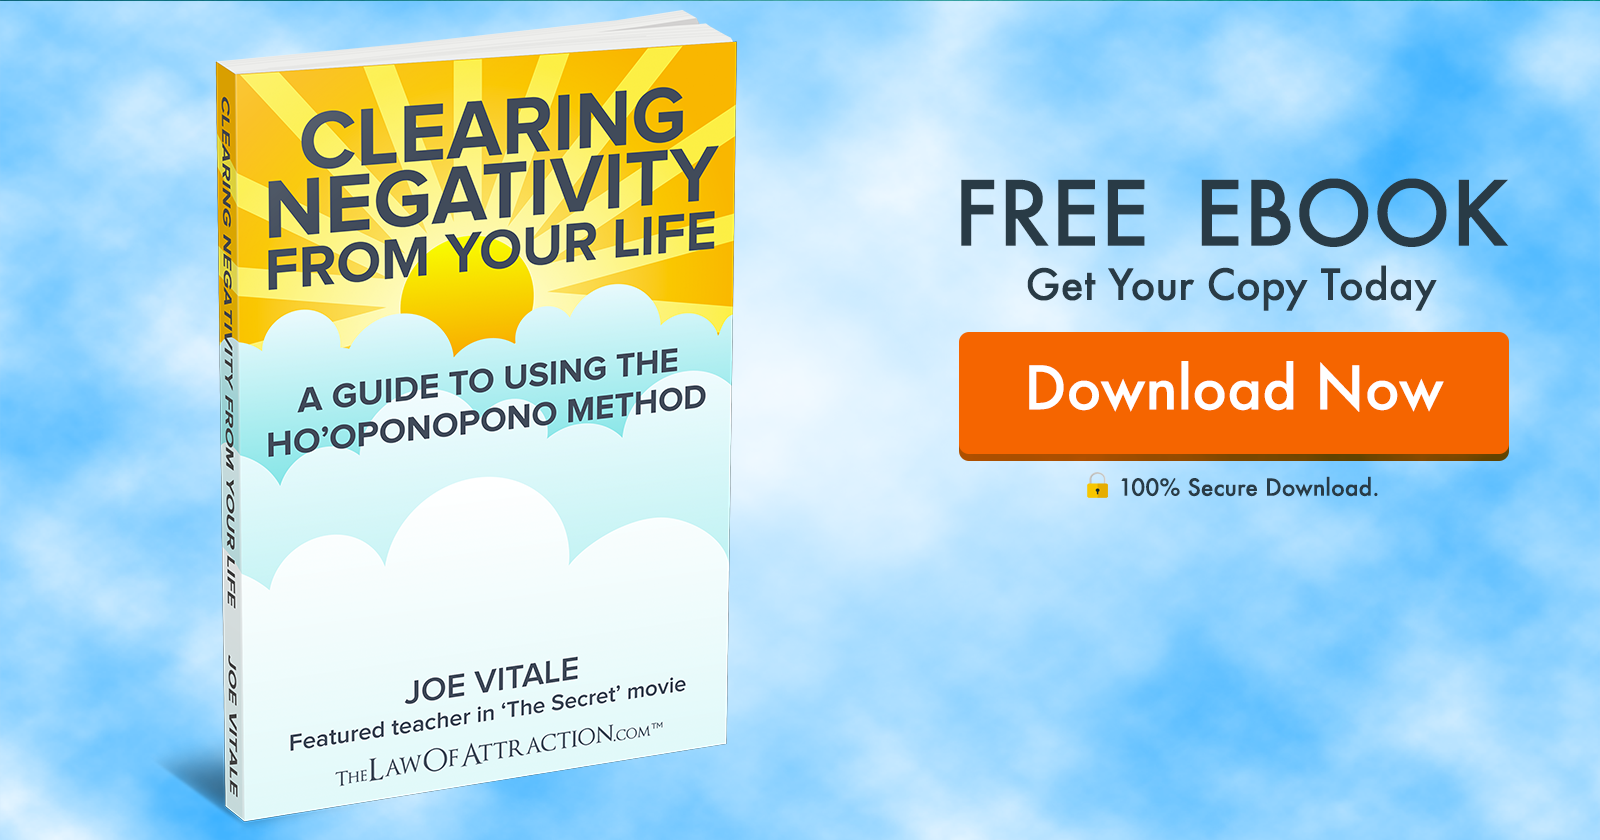 Free eBook Download] Clearing Negativity From Your Life